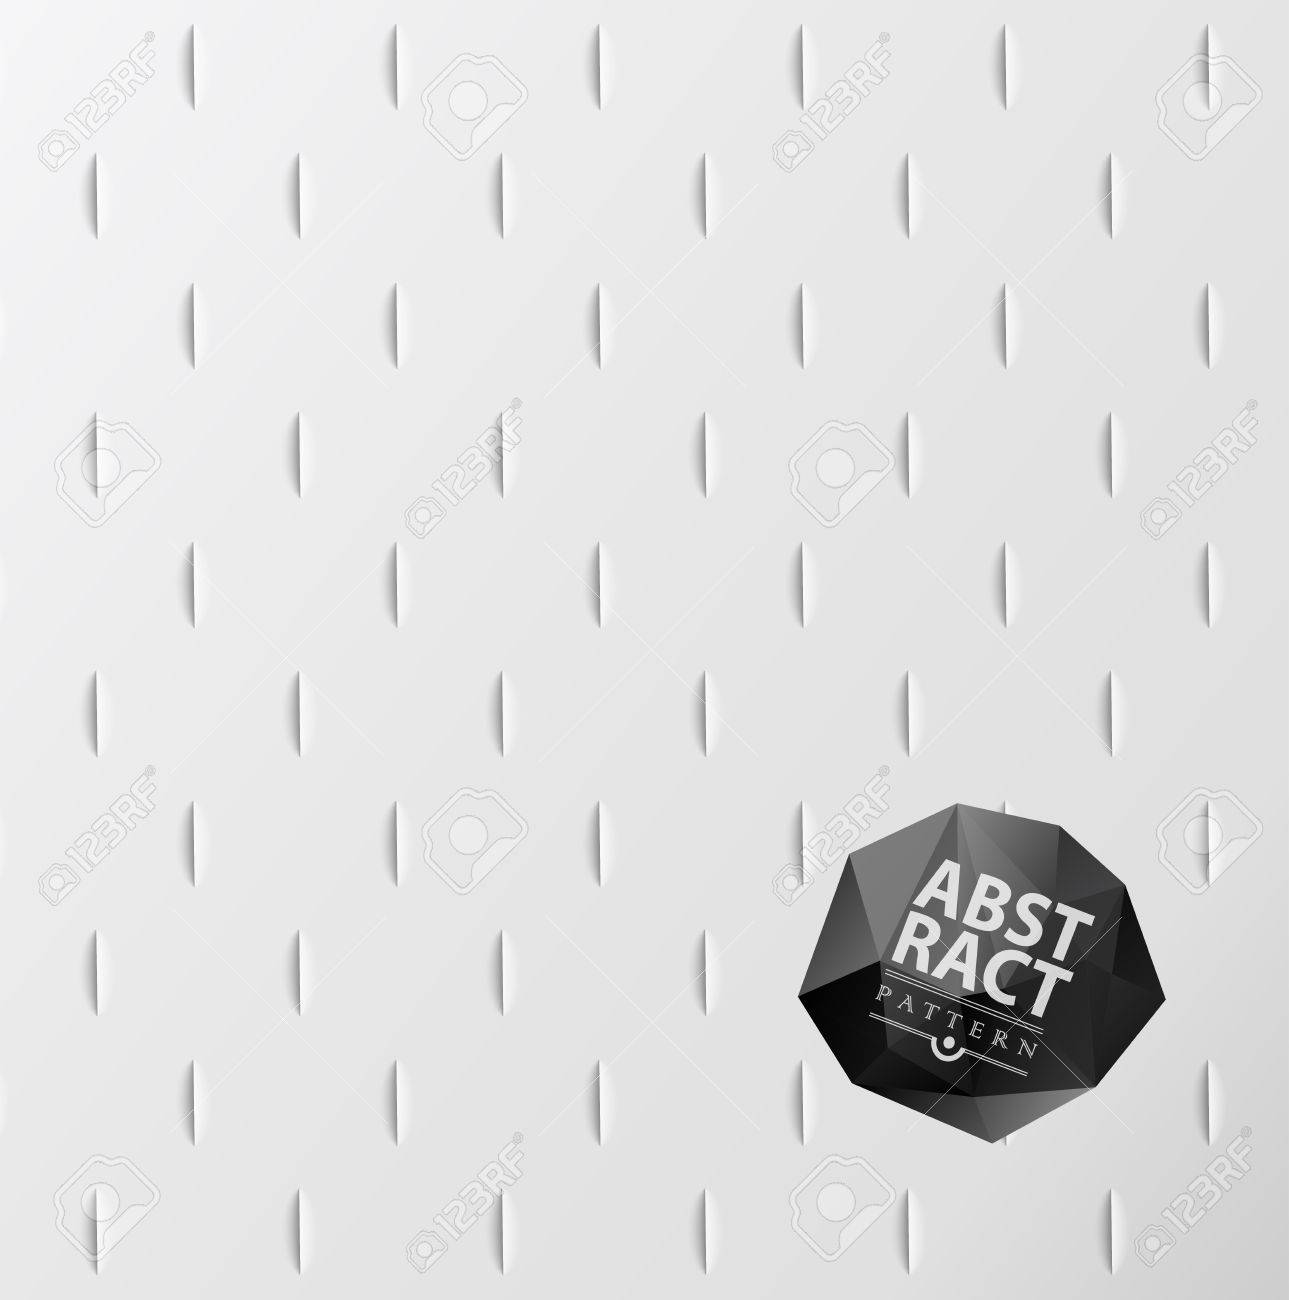 abstract geometric background paper cut texture shadow abstract geometric background paper cut texture shadow simple clean background texture interior